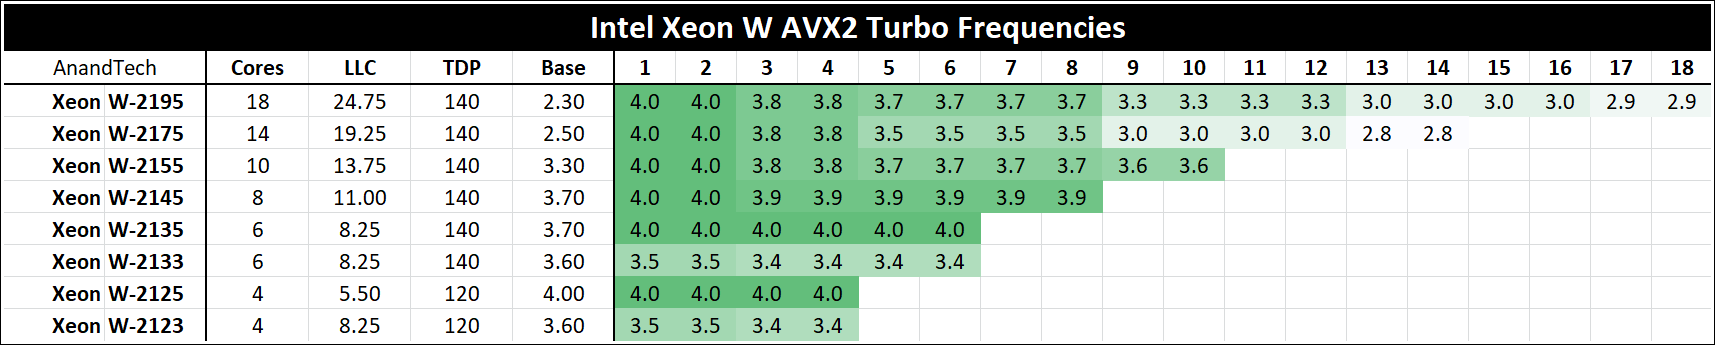 Update on Xeon W: Turbo Tables